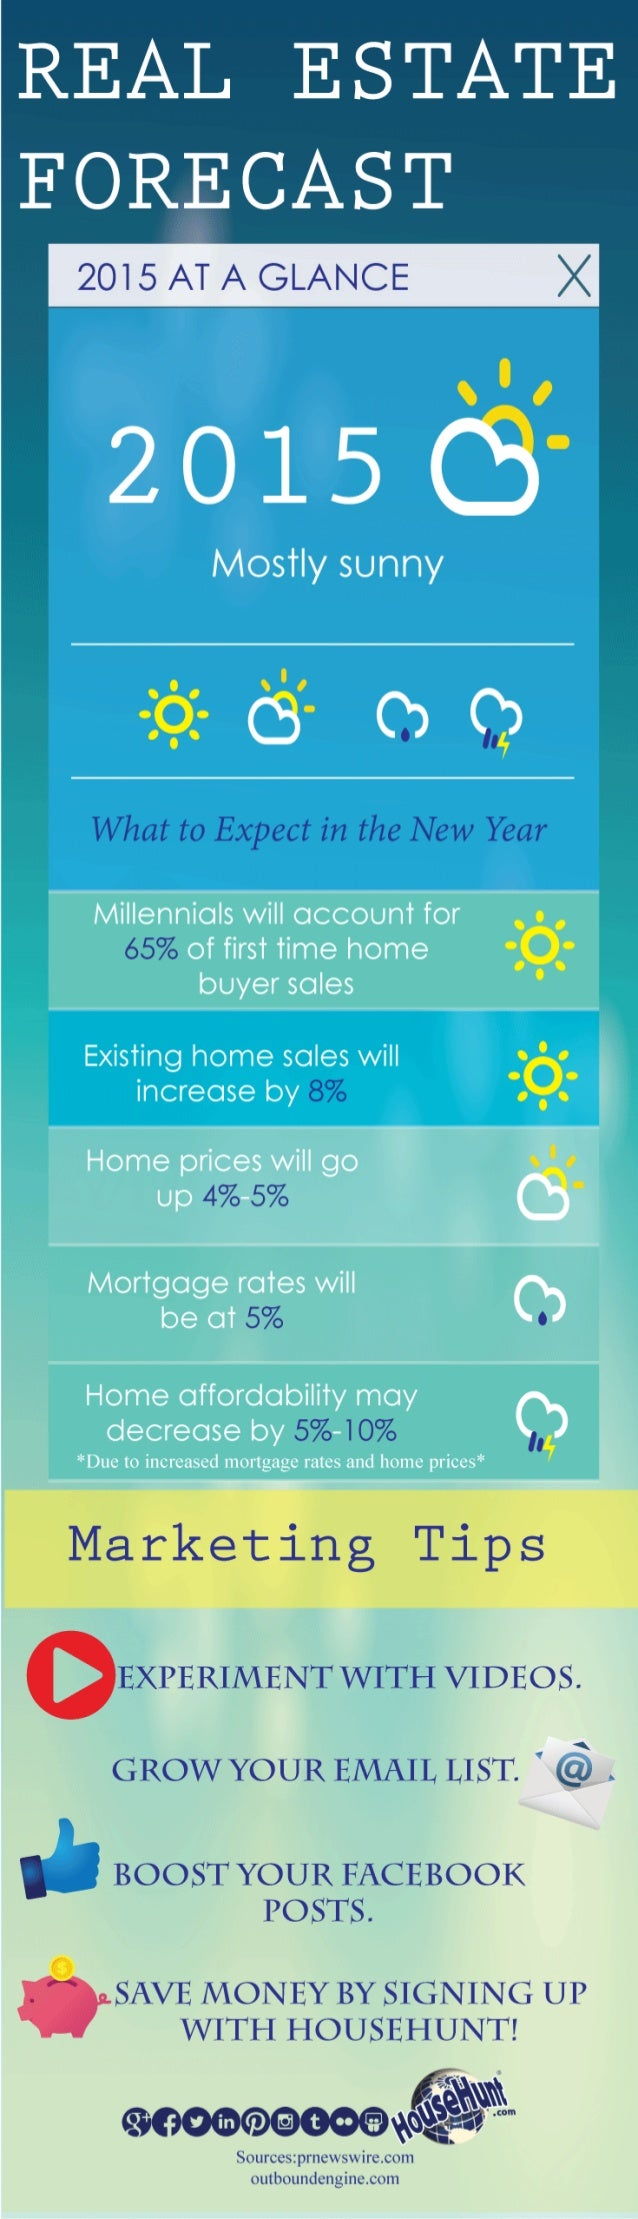 R E A L E  T A T E  Mostly sunny  C':        Millennials will accounl for 4 of firsl time home buyer sales  Exisling home ...